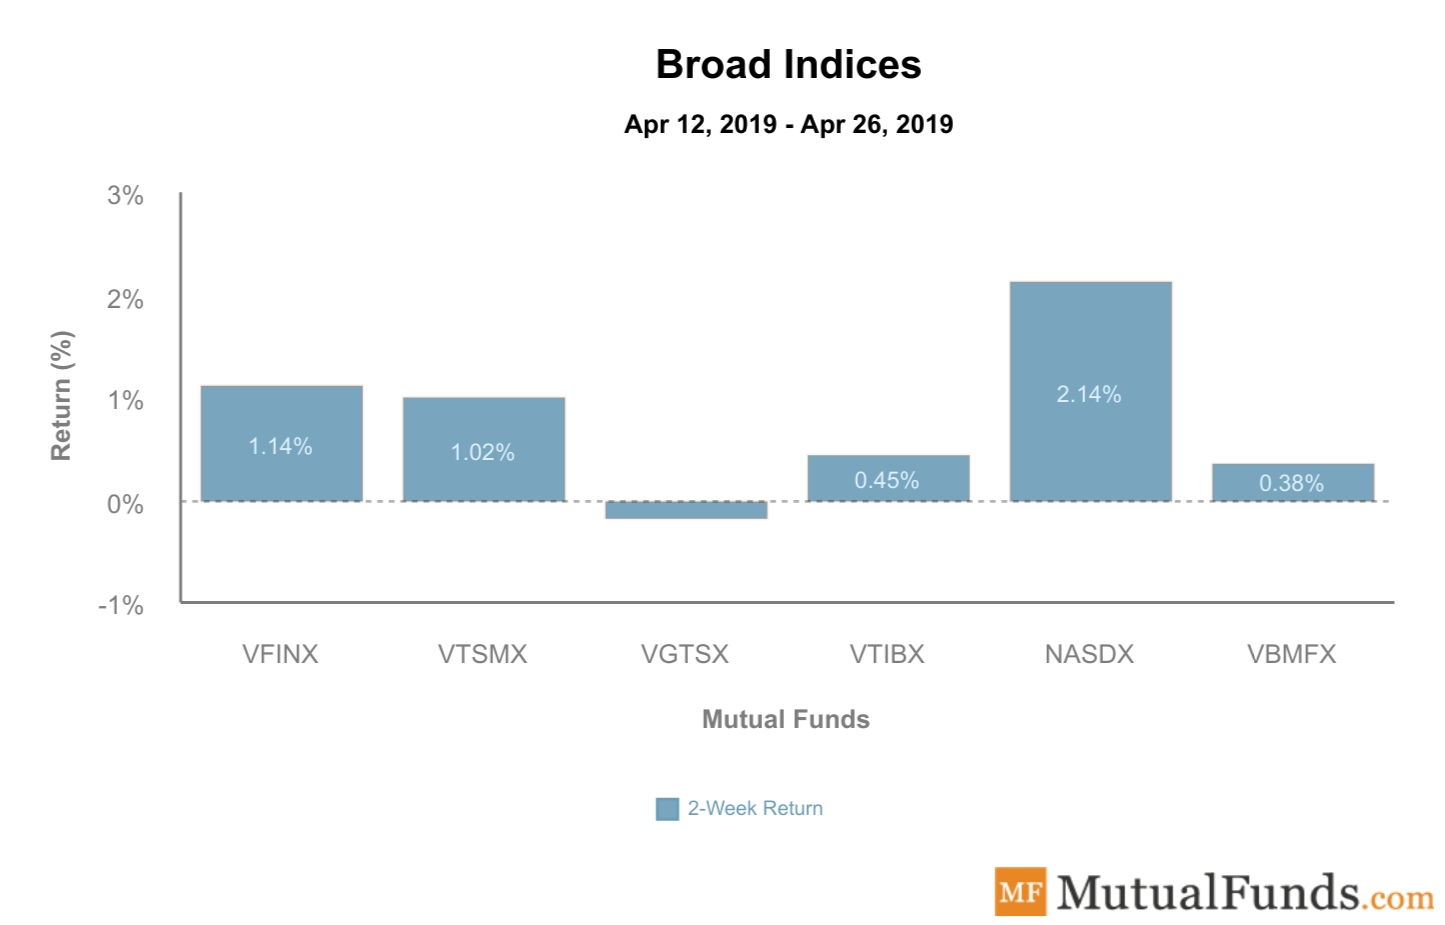 Broad Indices Performance April 30